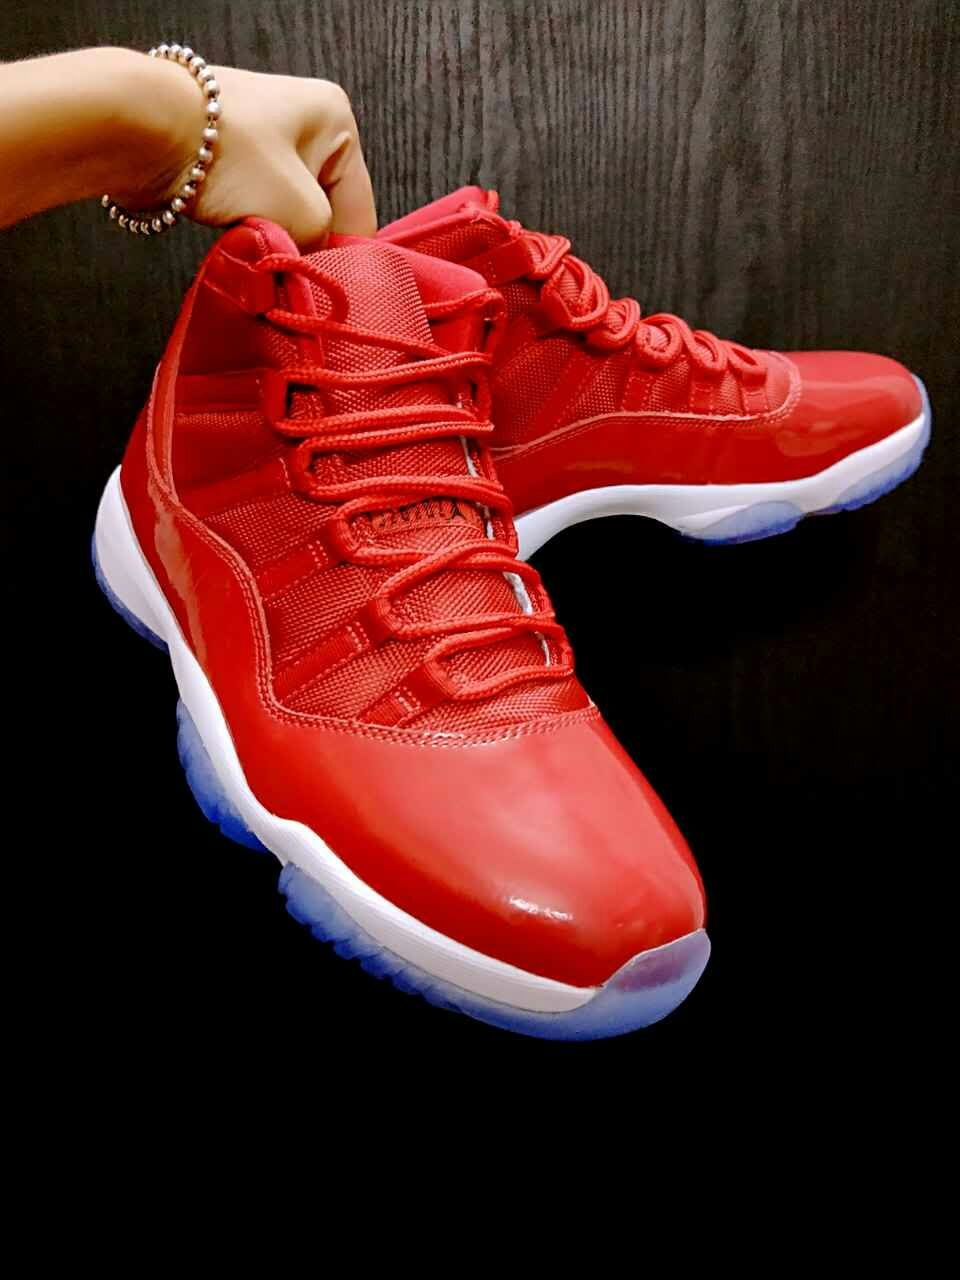 2017 Women Air Jordan 11 All Red Ice Blue Shoes